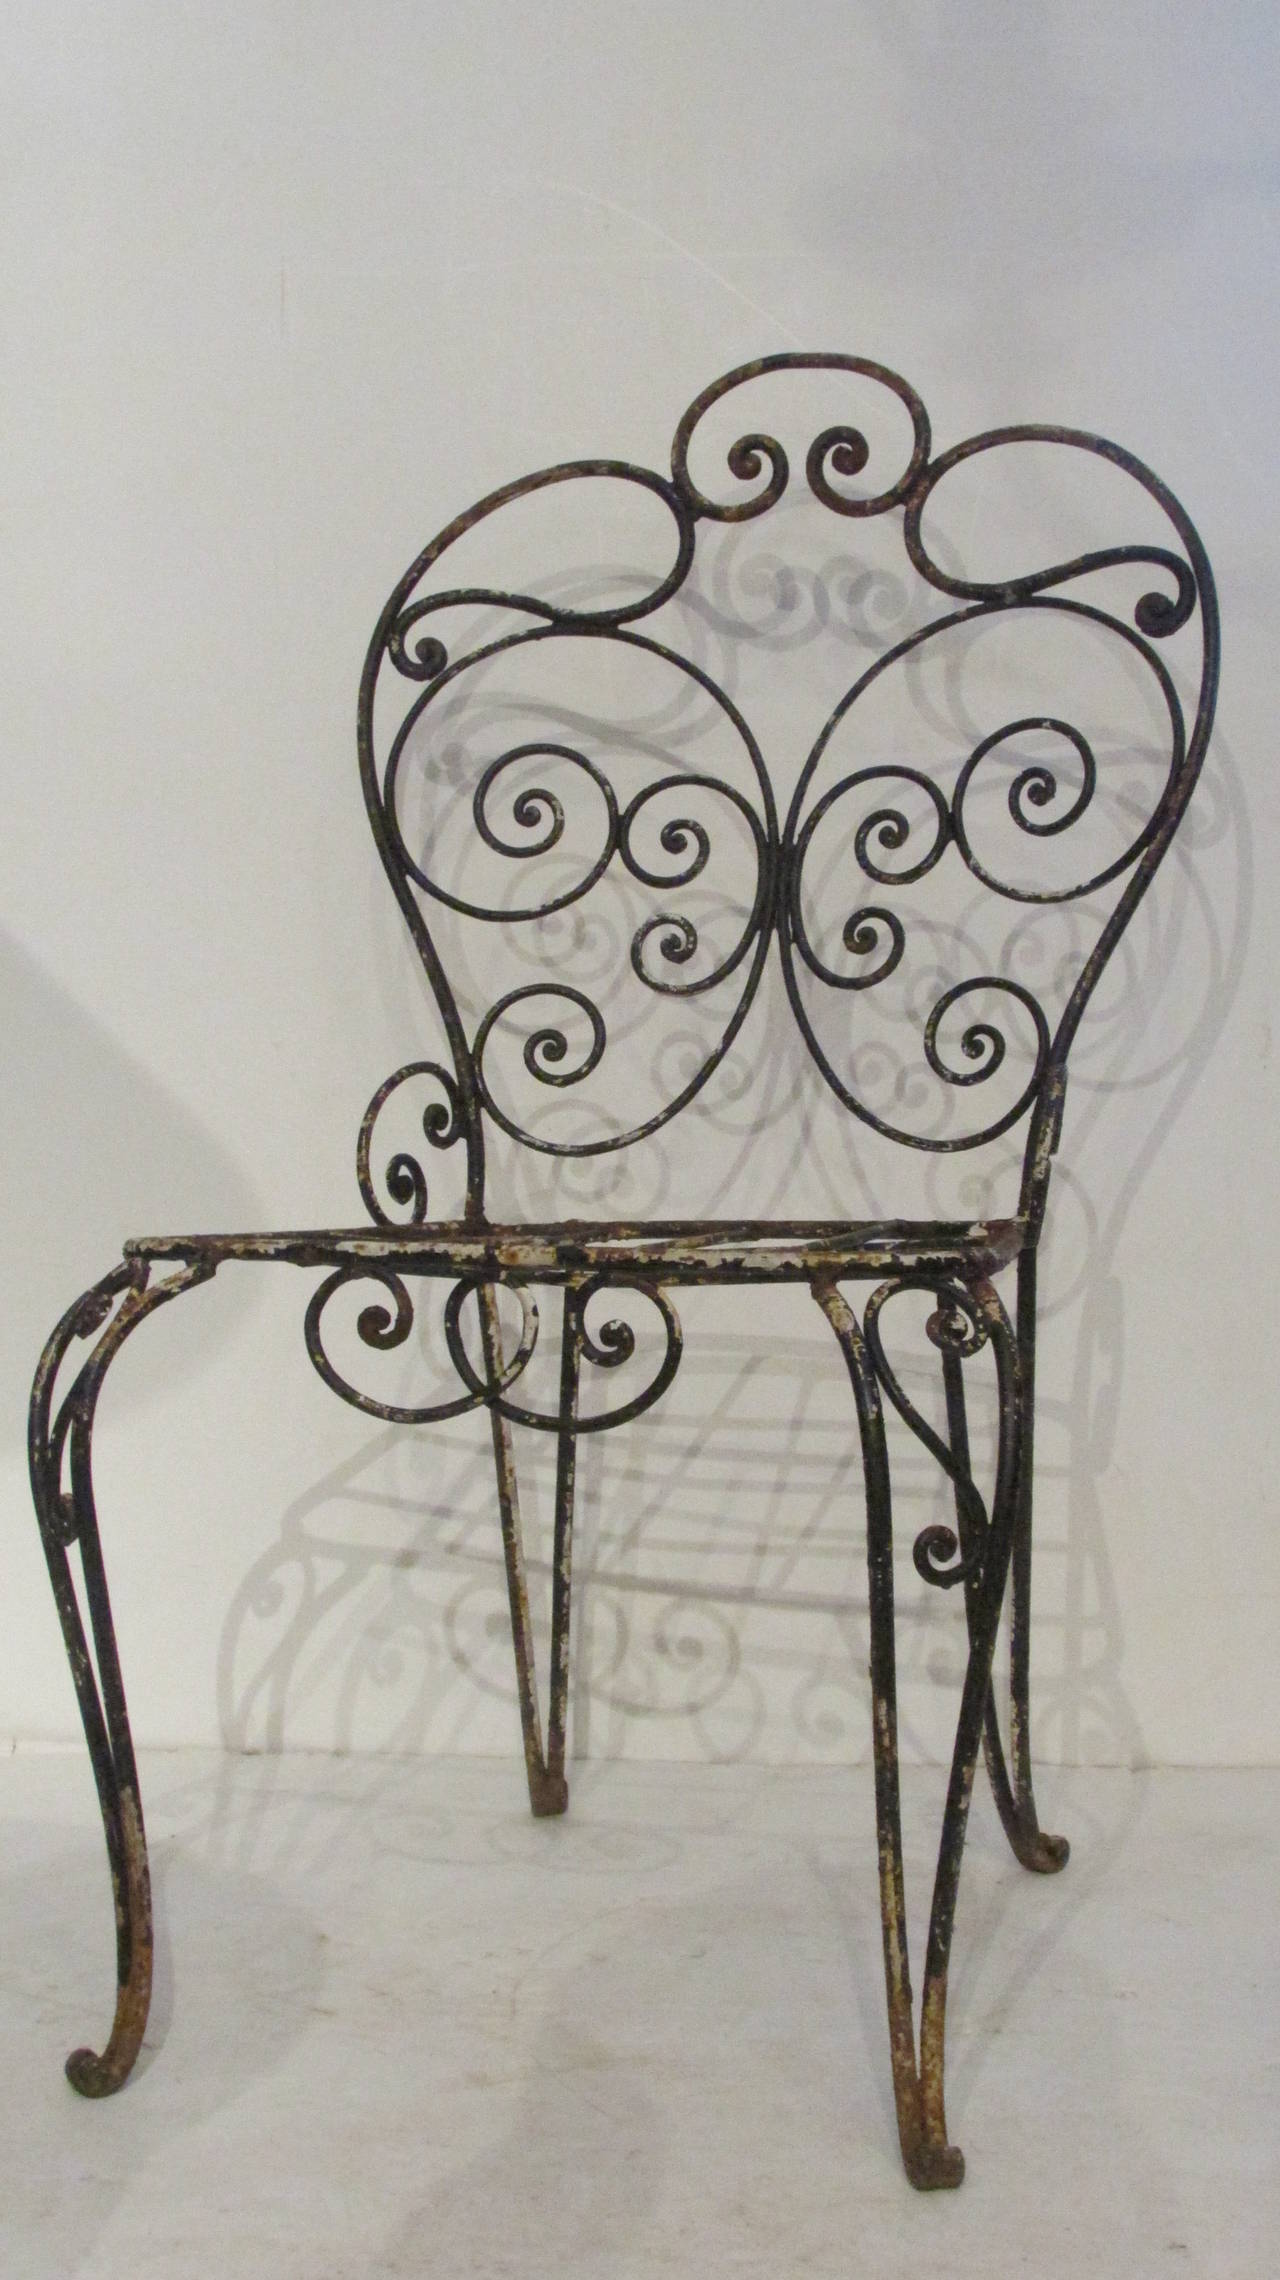 1940s French Iron Garden Chair For Sale 3